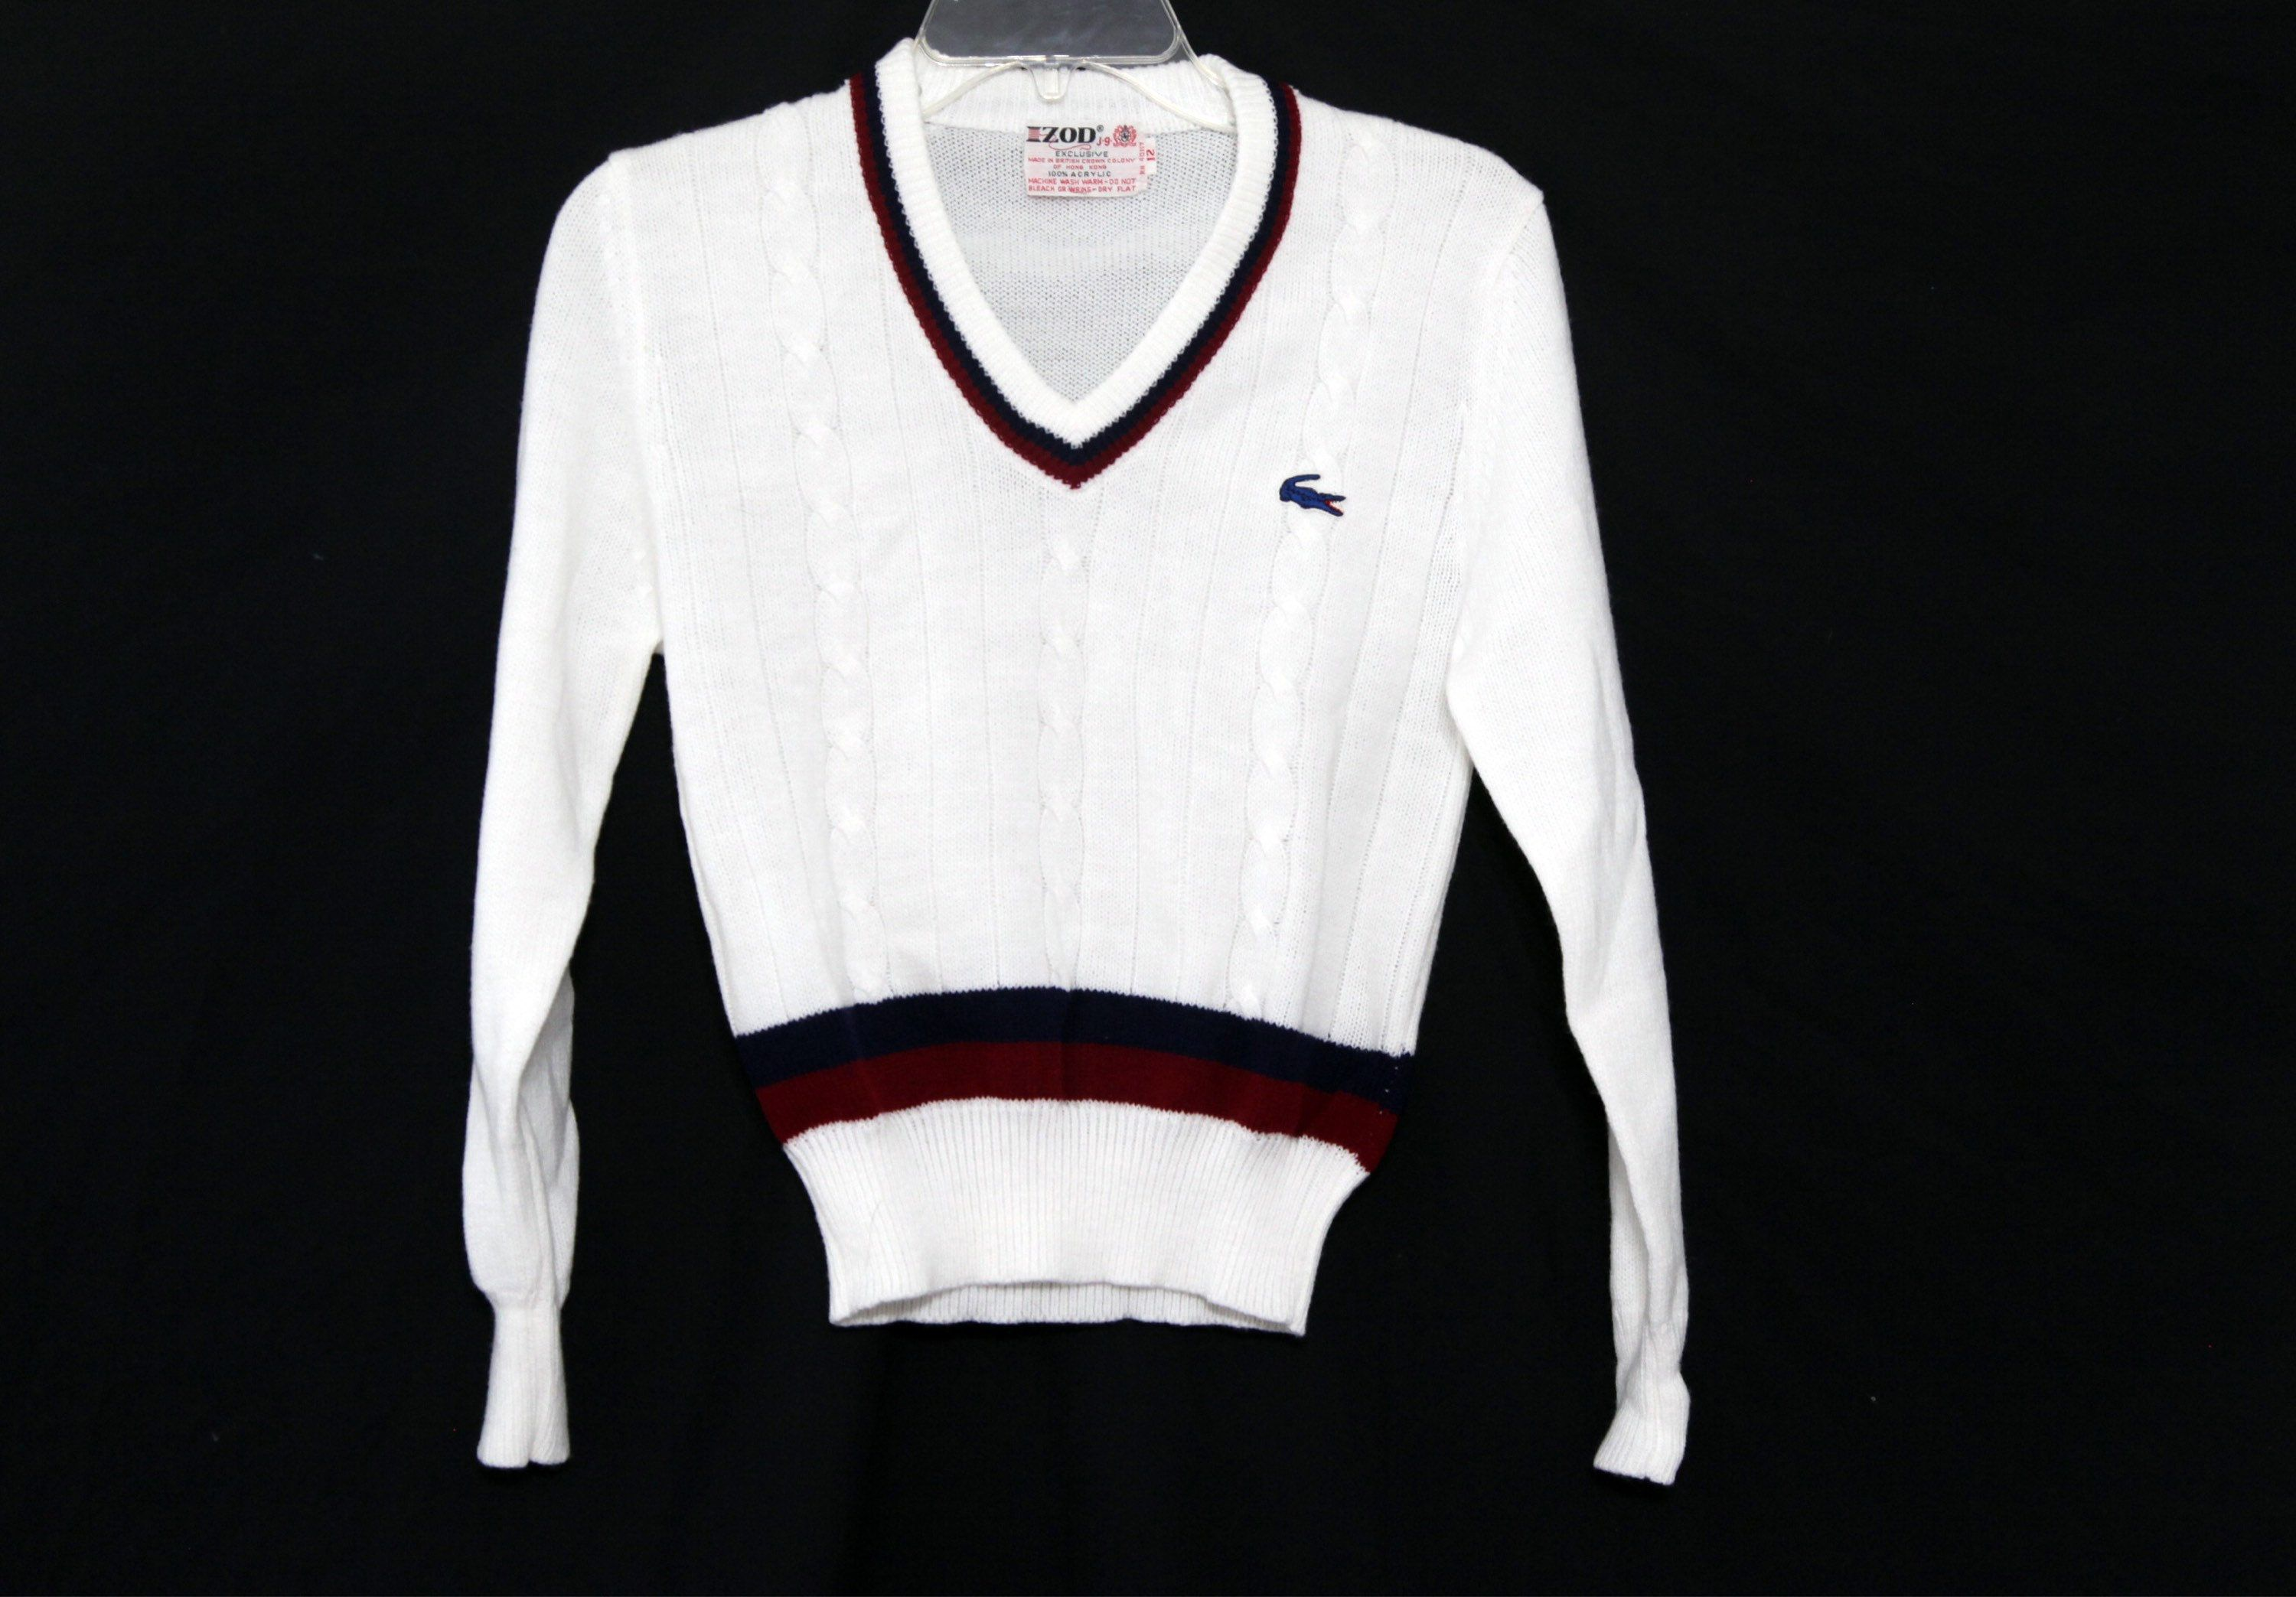 92c98cdb745 Vintage 80s Lacoste sweater vneck tennis preppy crop top womens kids by  216vintageModern on Etsy